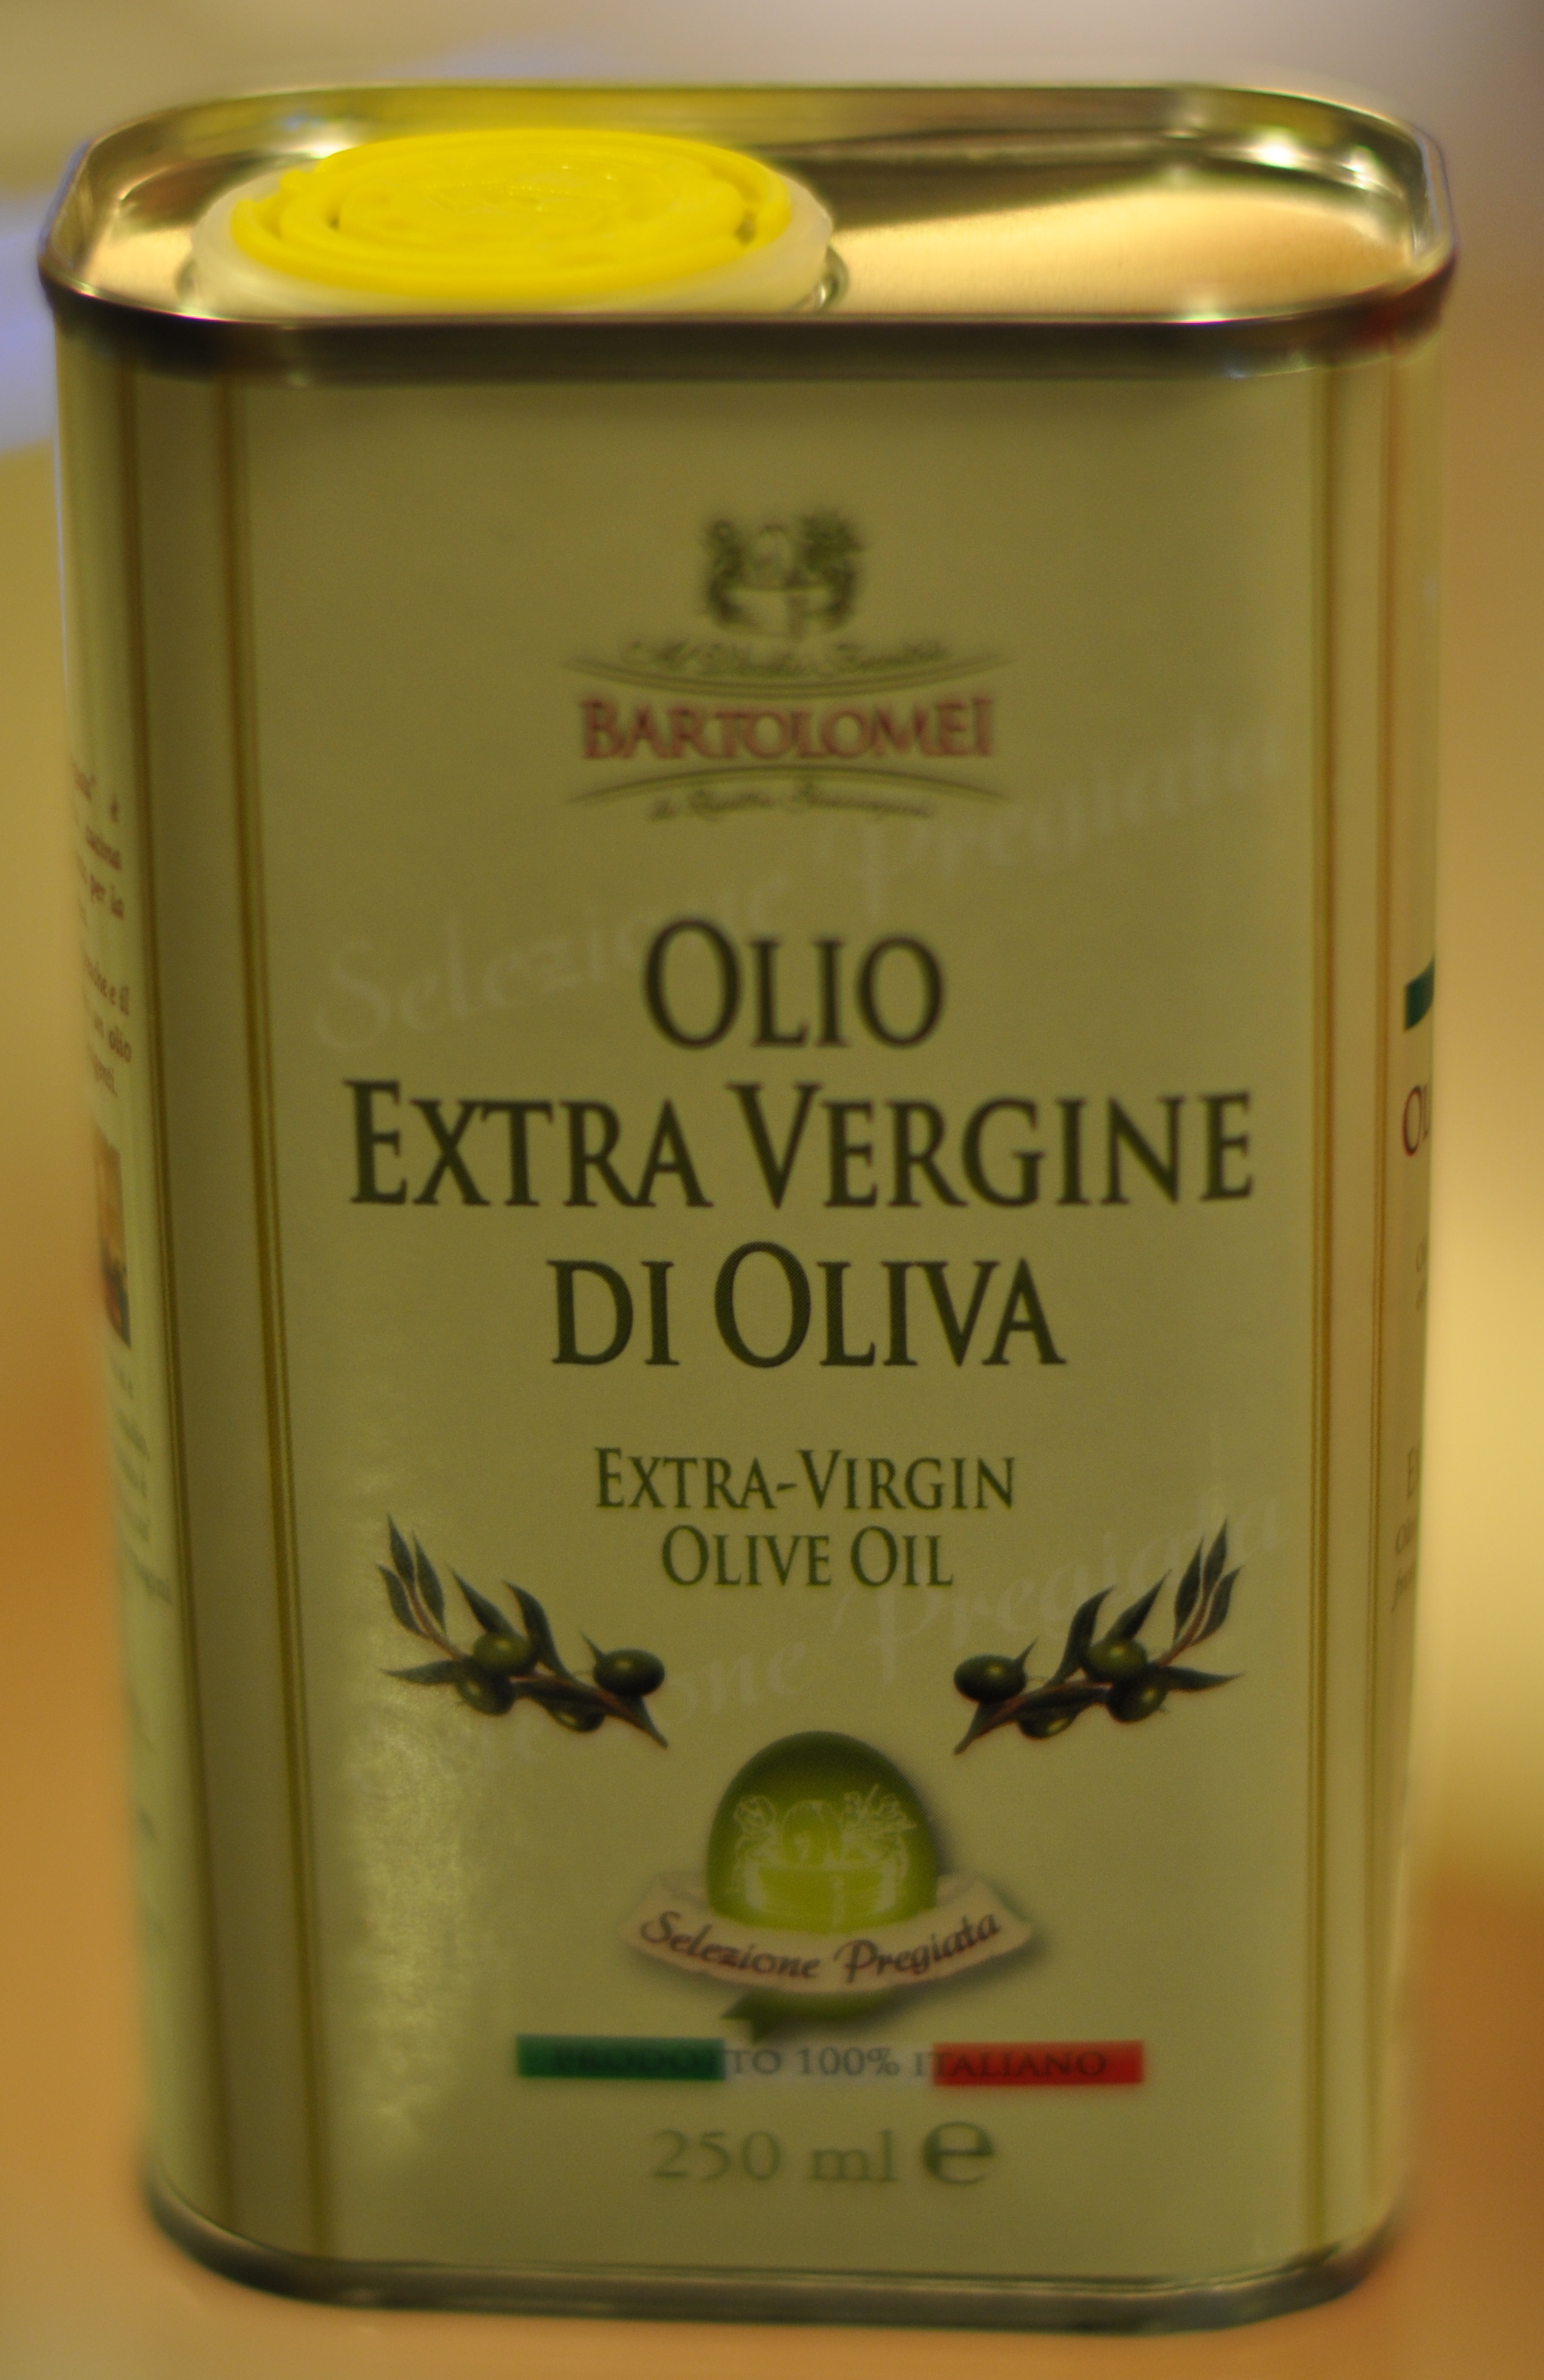 A lil olive oil goes a long way